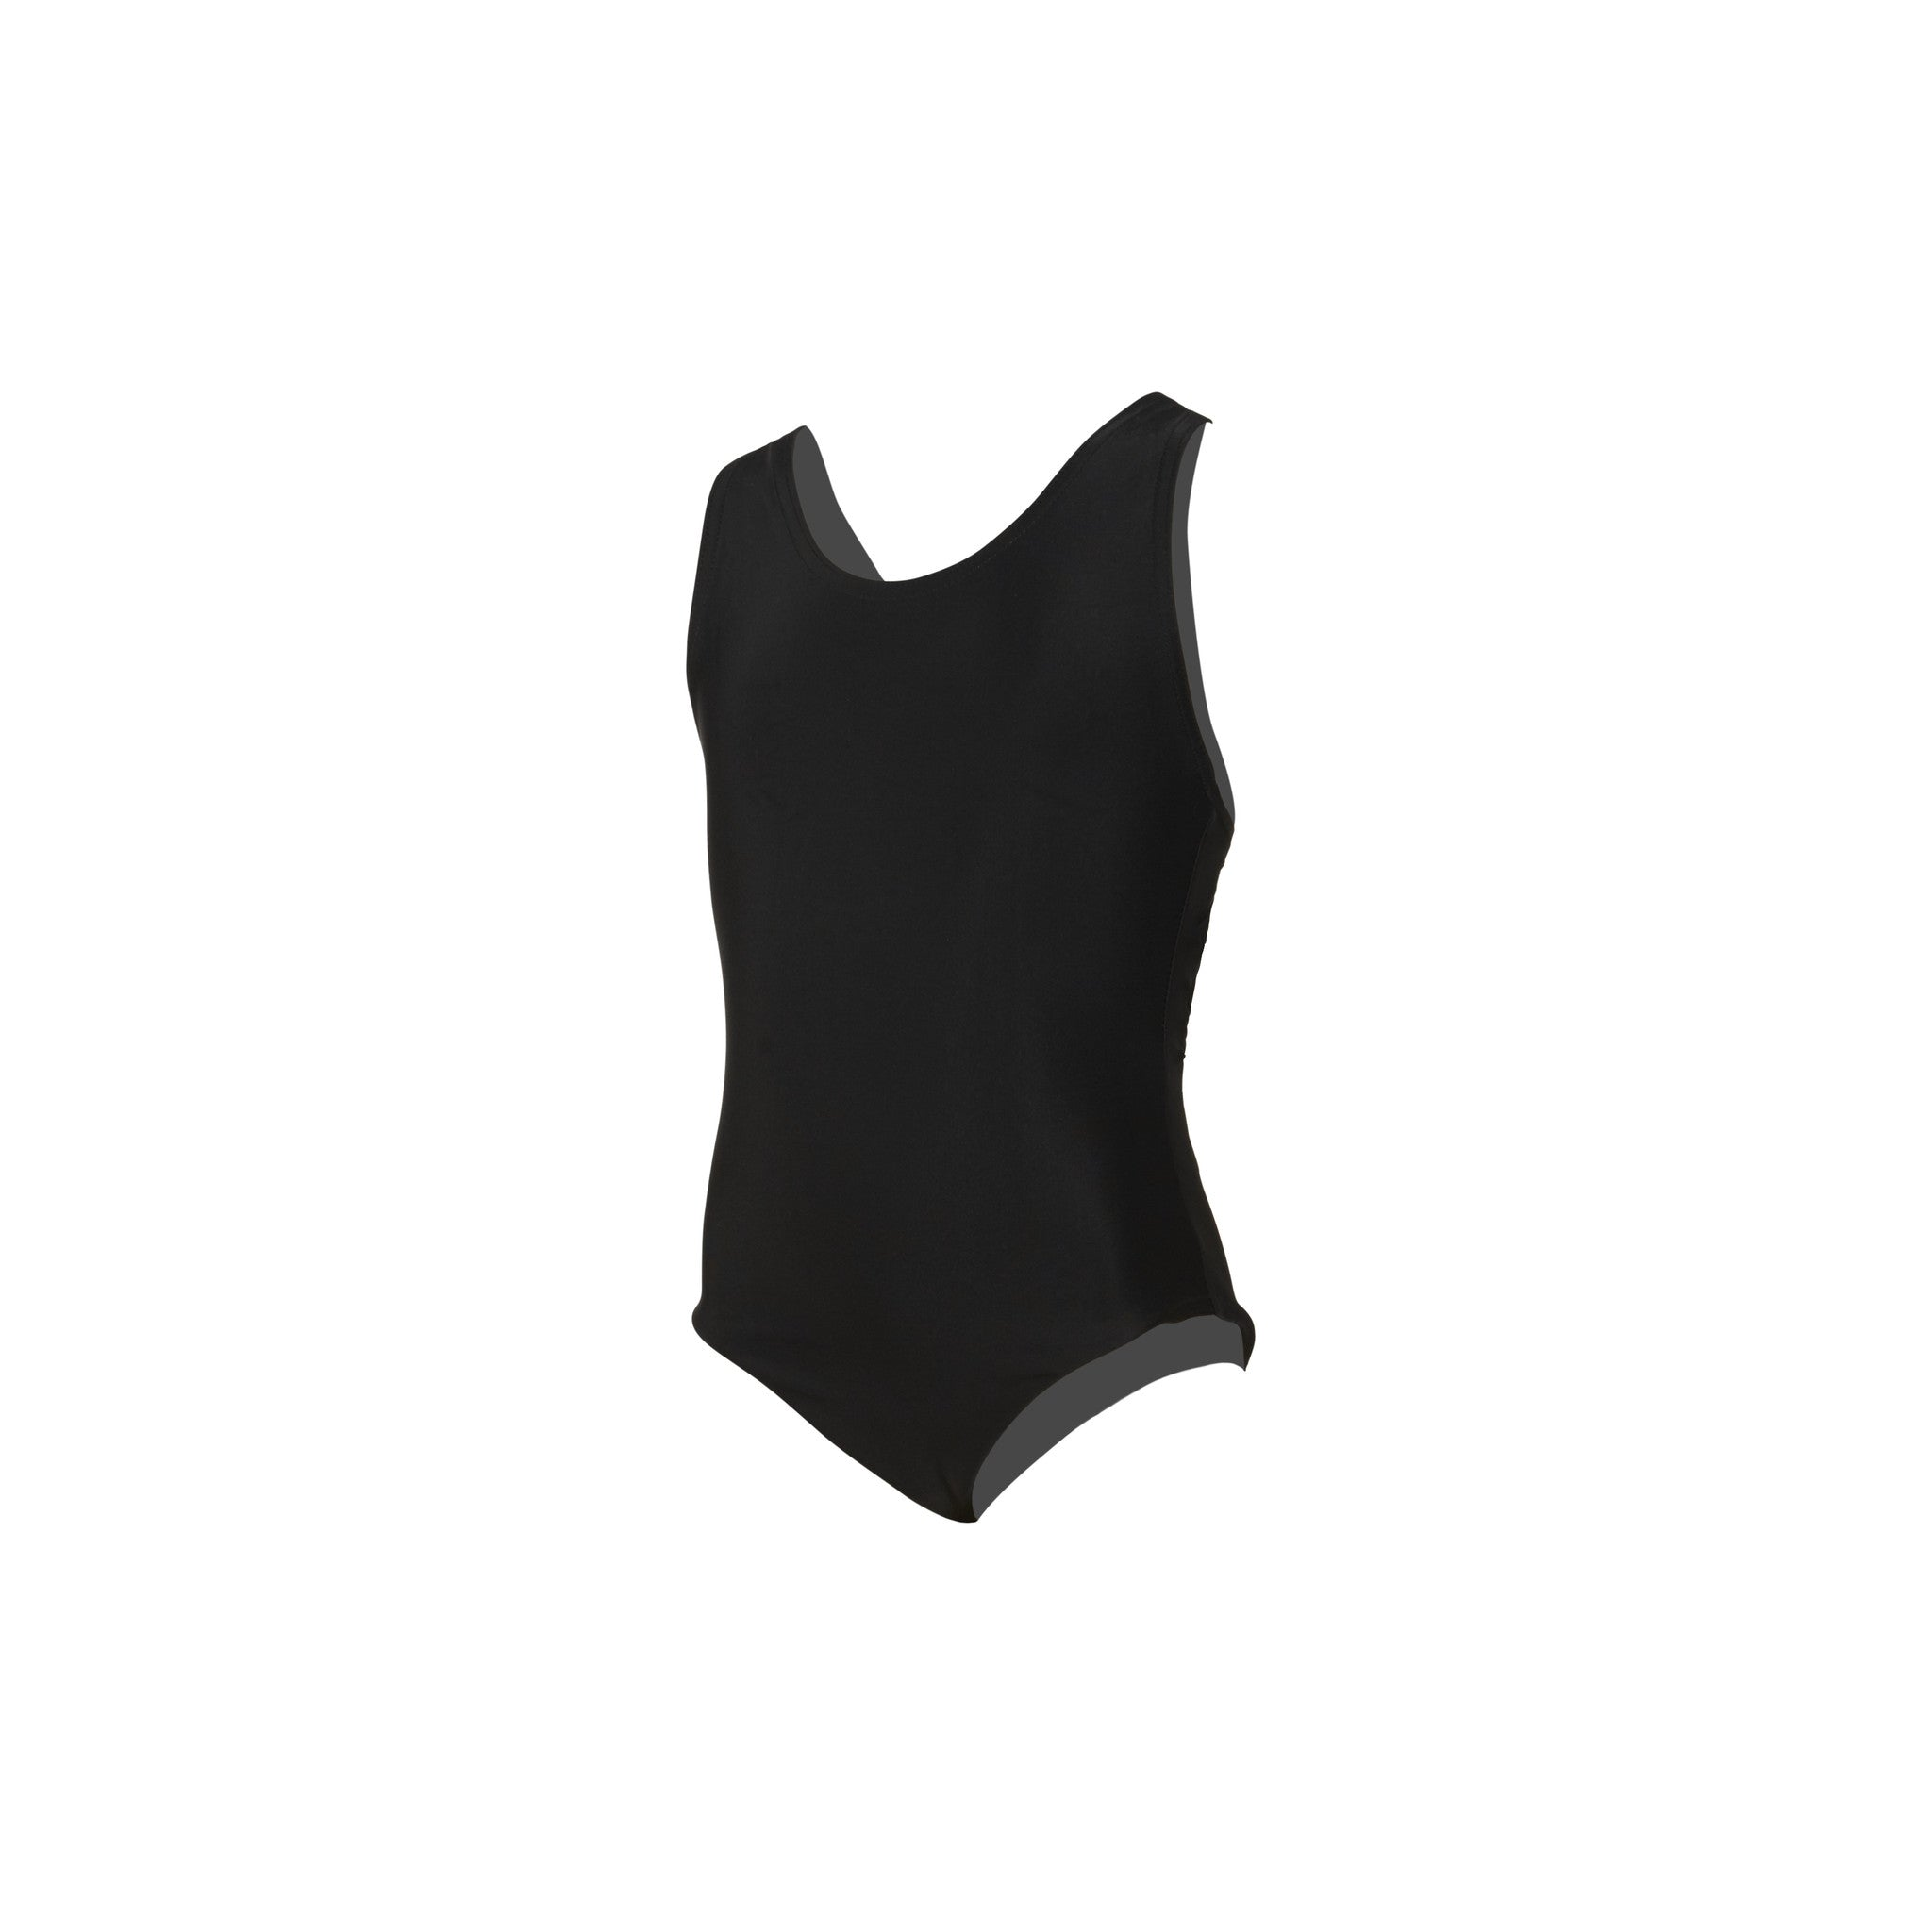 Pre-Prep and Prep Girls' Black Swimming Costume